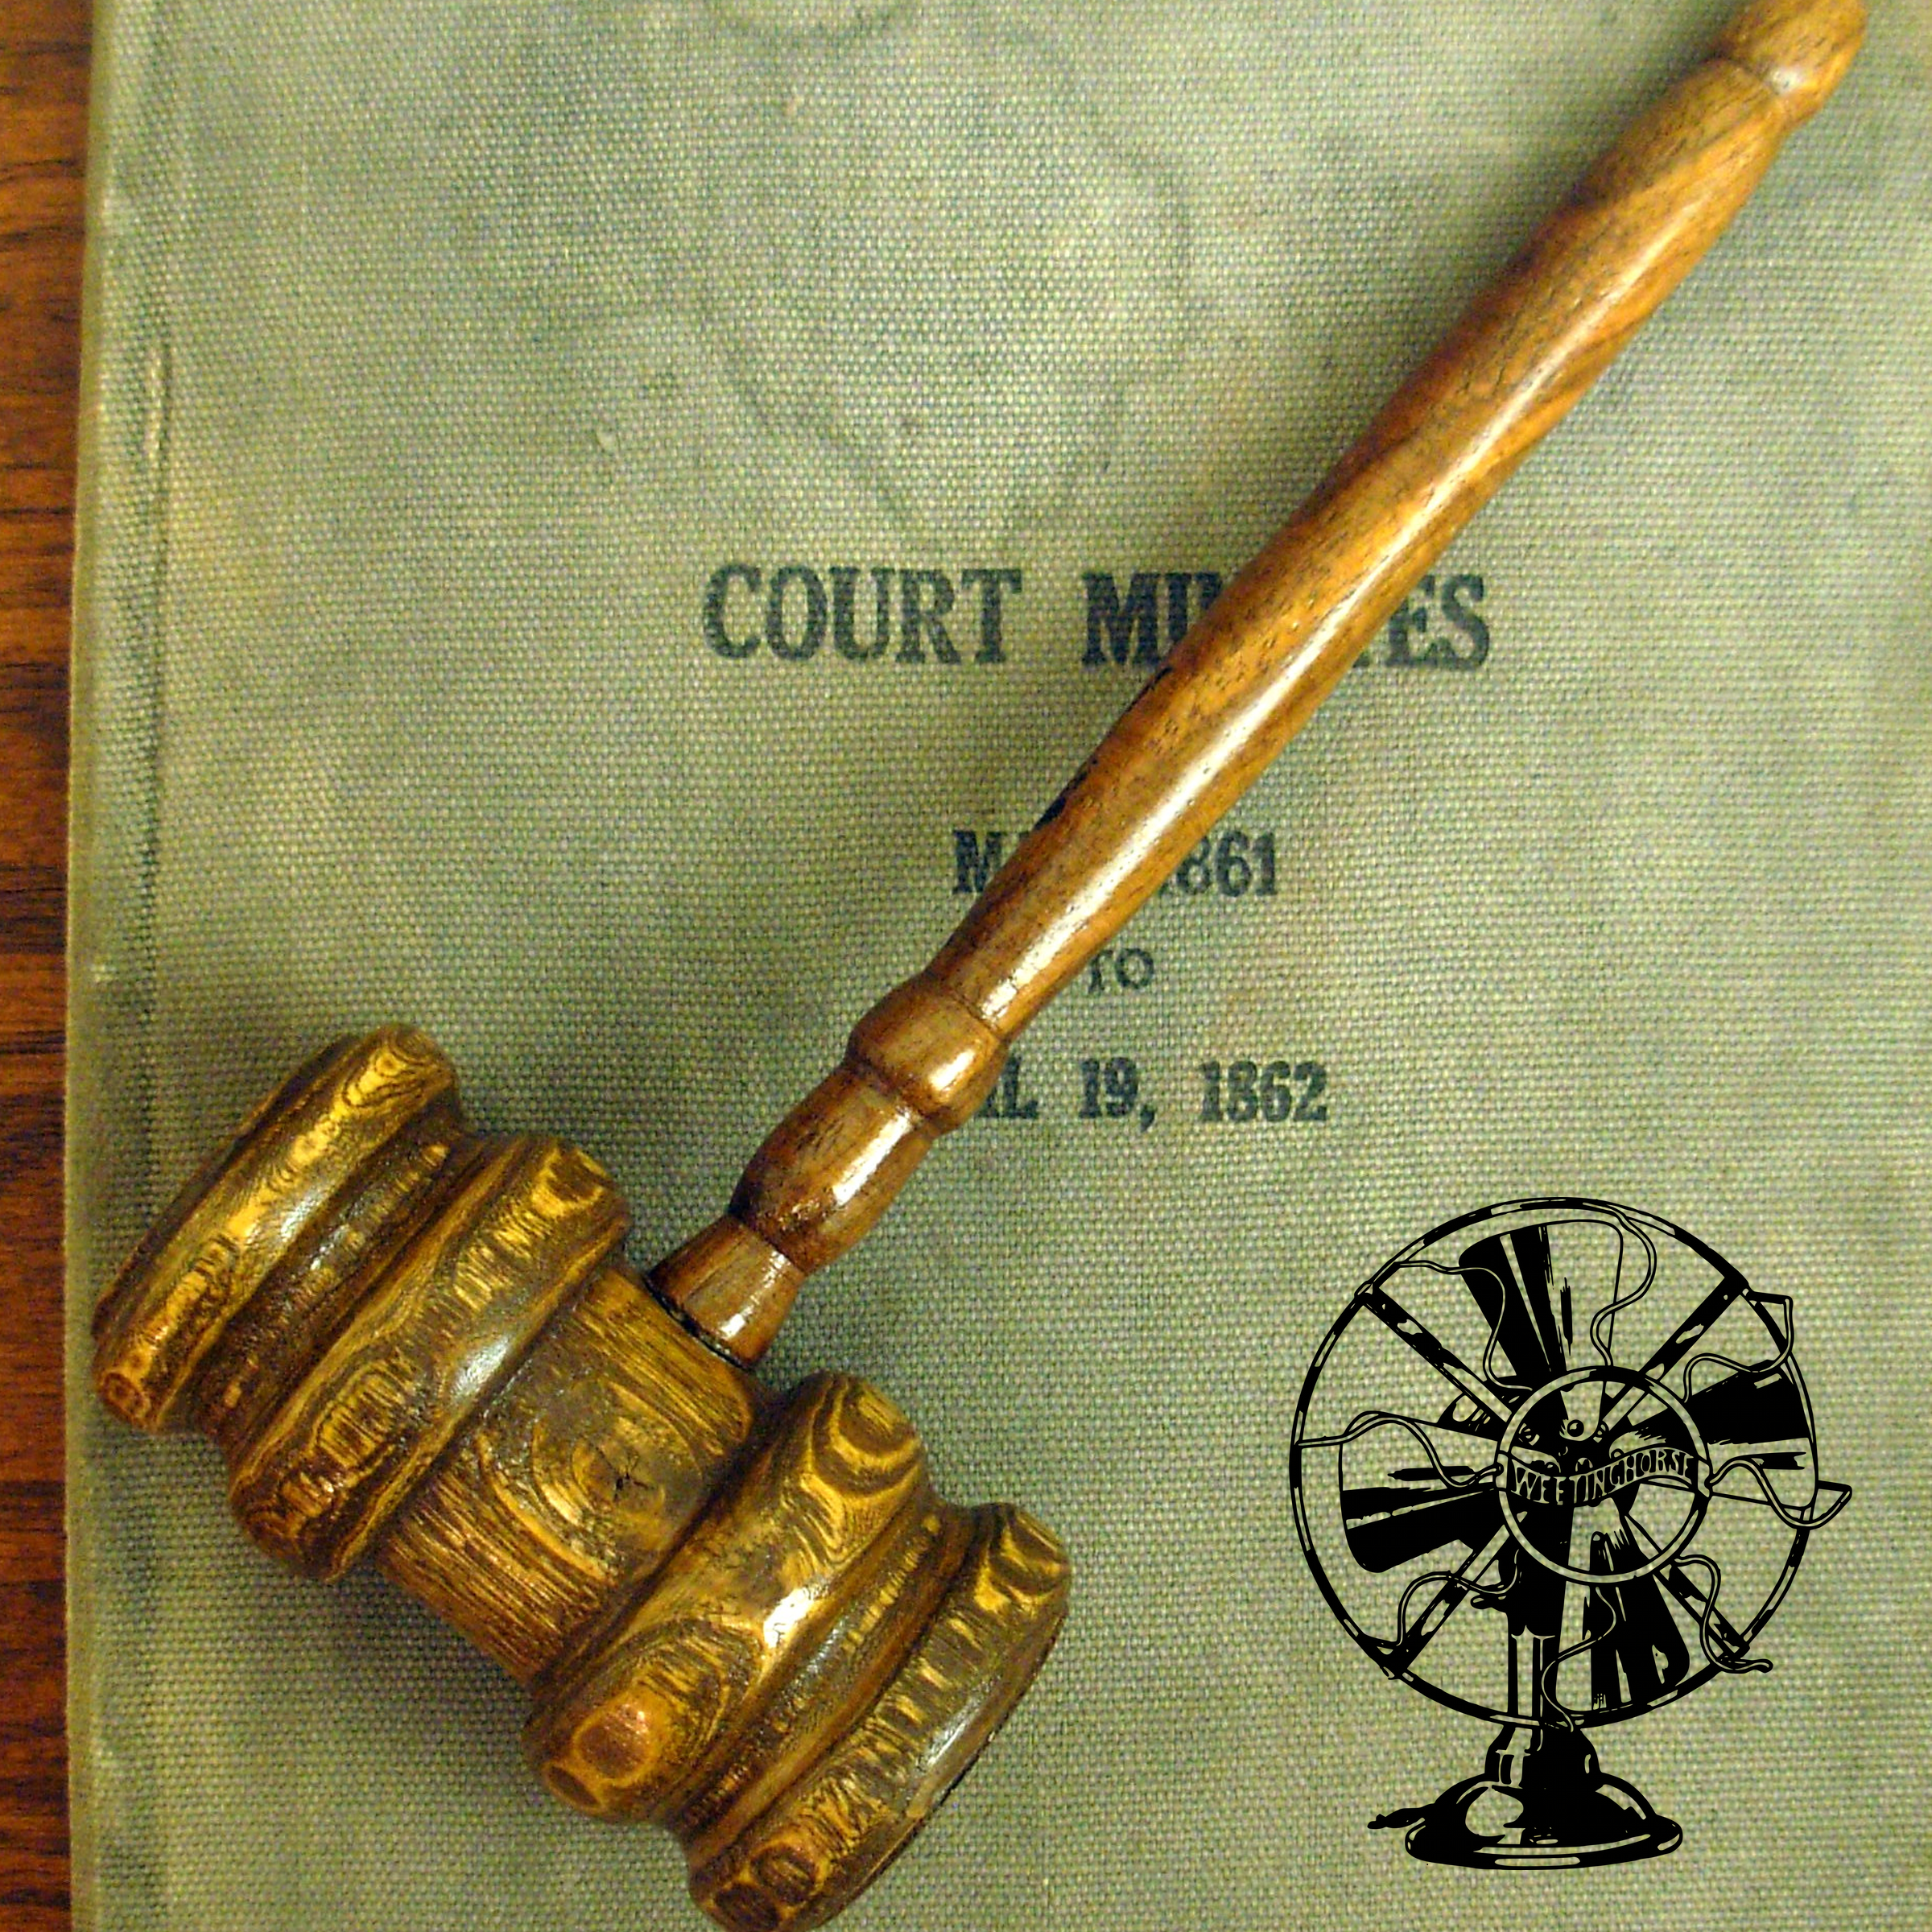 Episode 4's cover: a gavel rests across a law book.